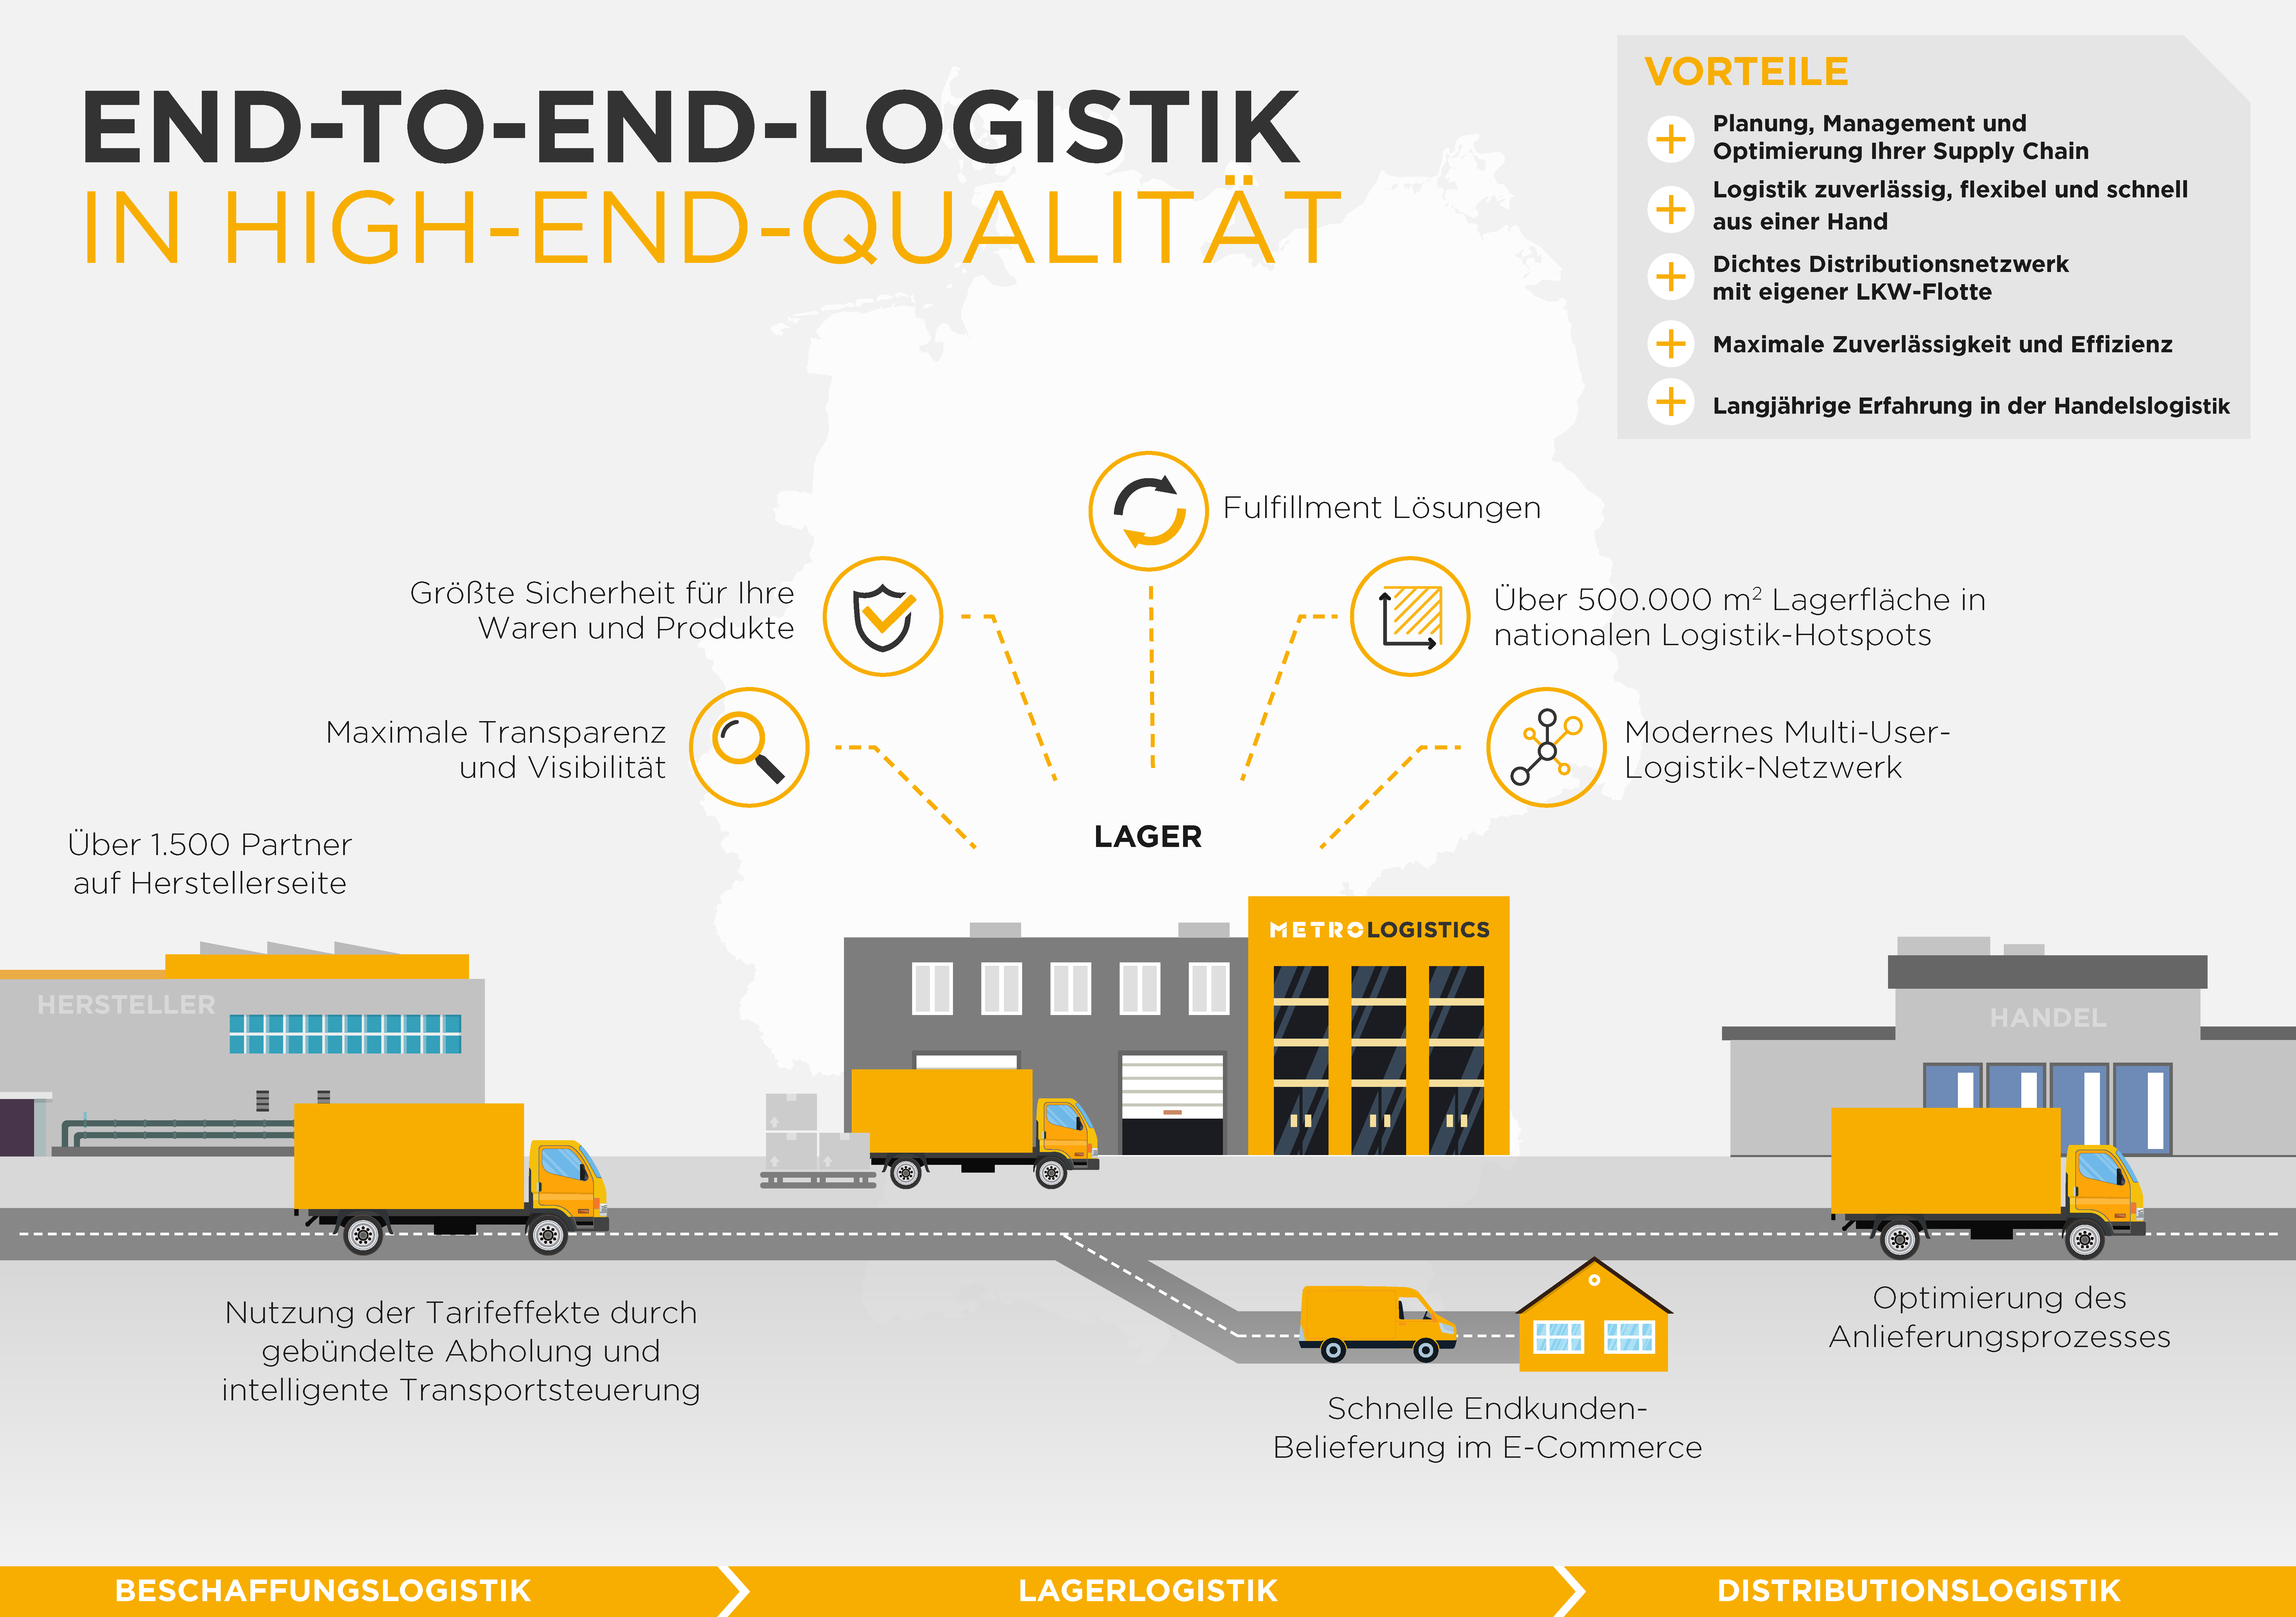 Big Picture - End-to-End-Logistik - Metro Logistics